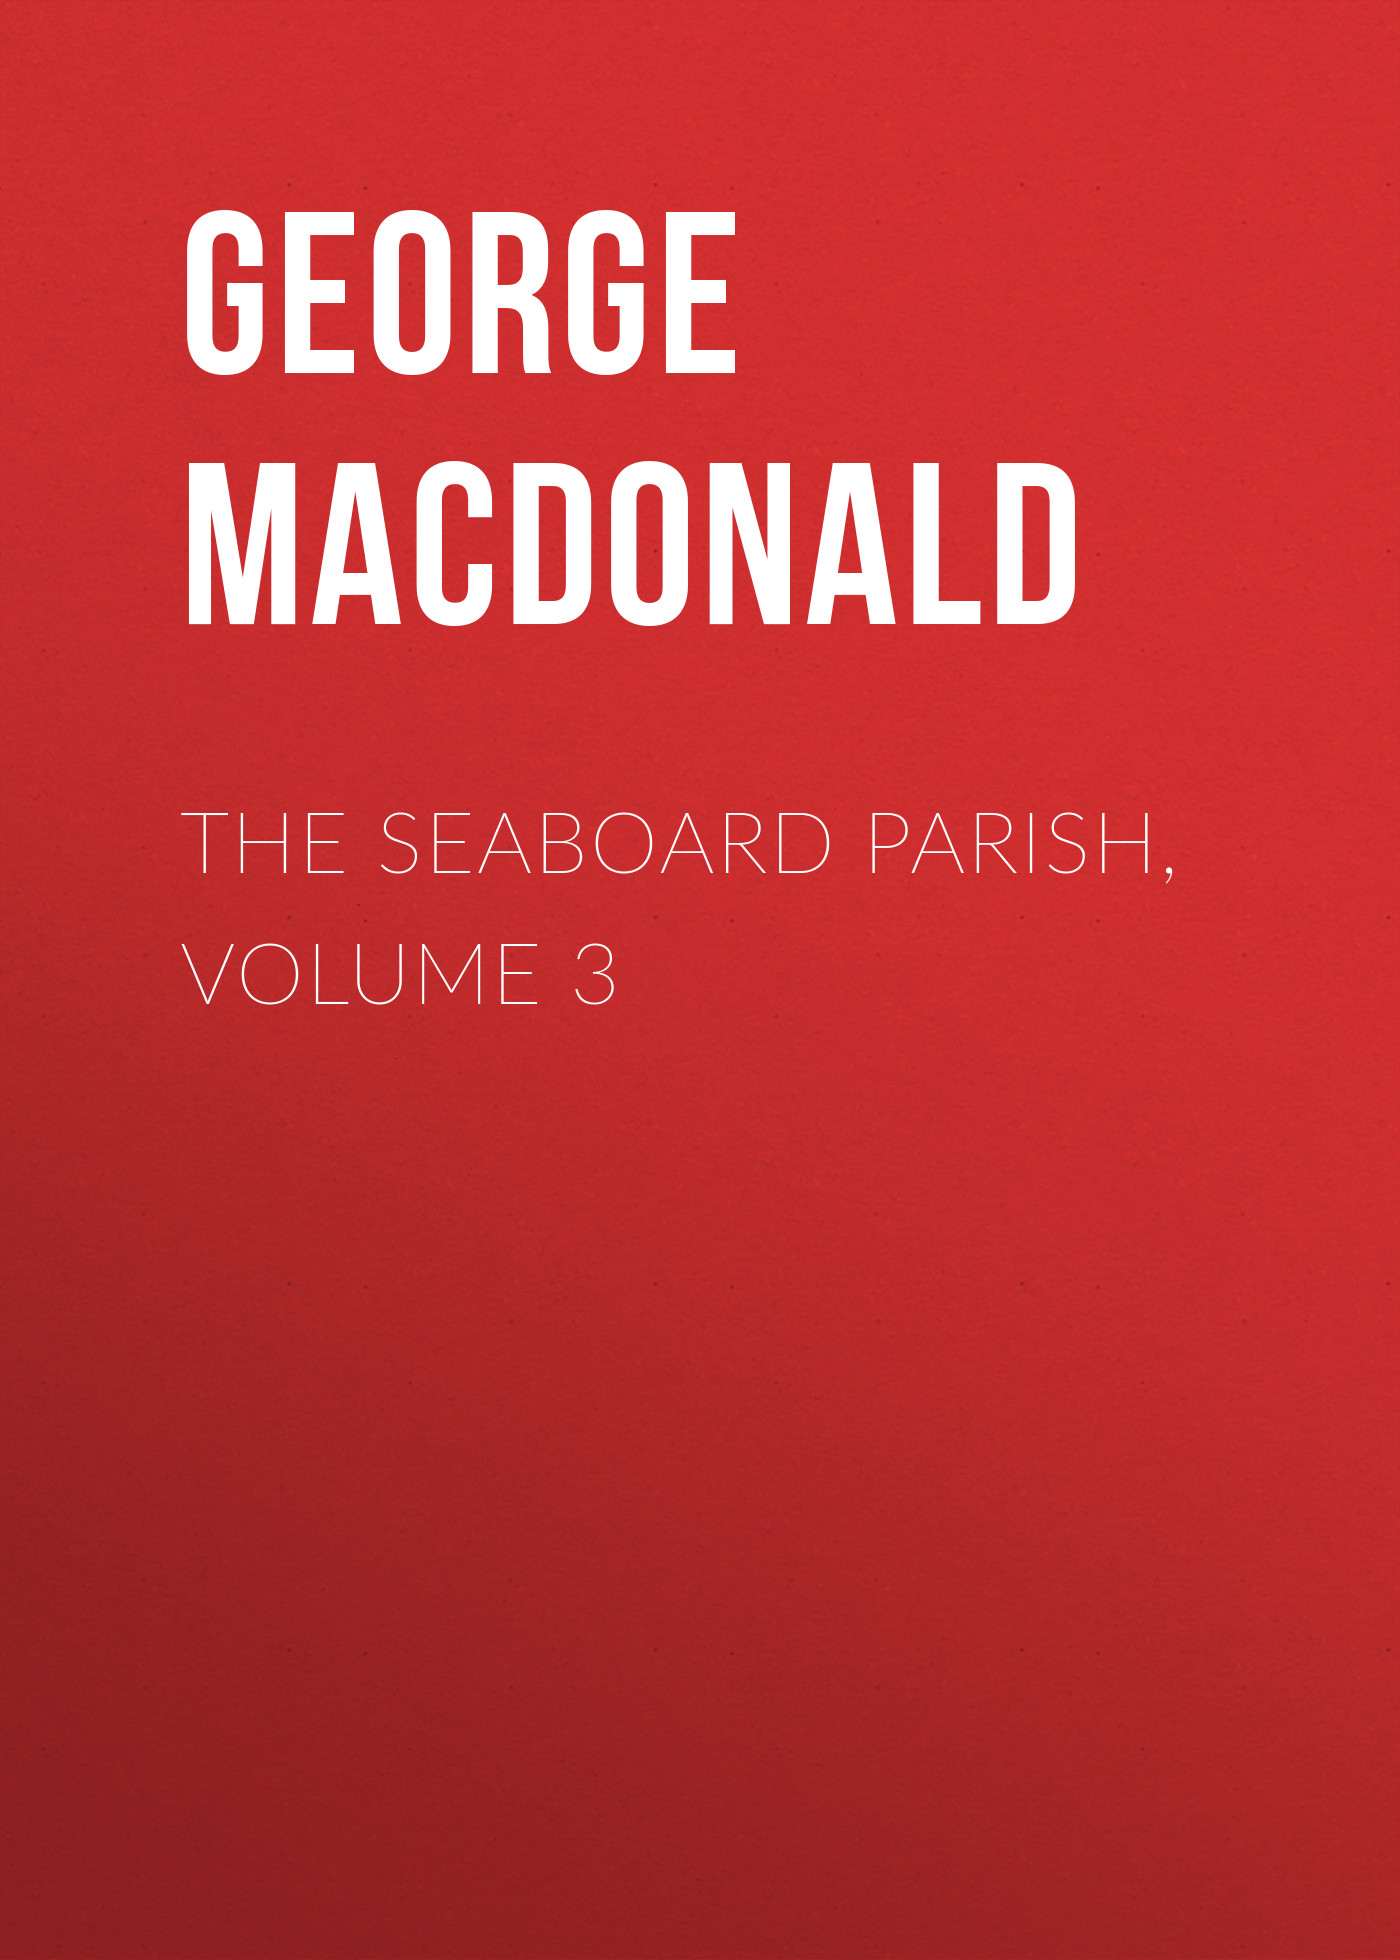 George MacDonald The Seaboard Parish, Volume 3 george macdonald the seaboard parish volume 1